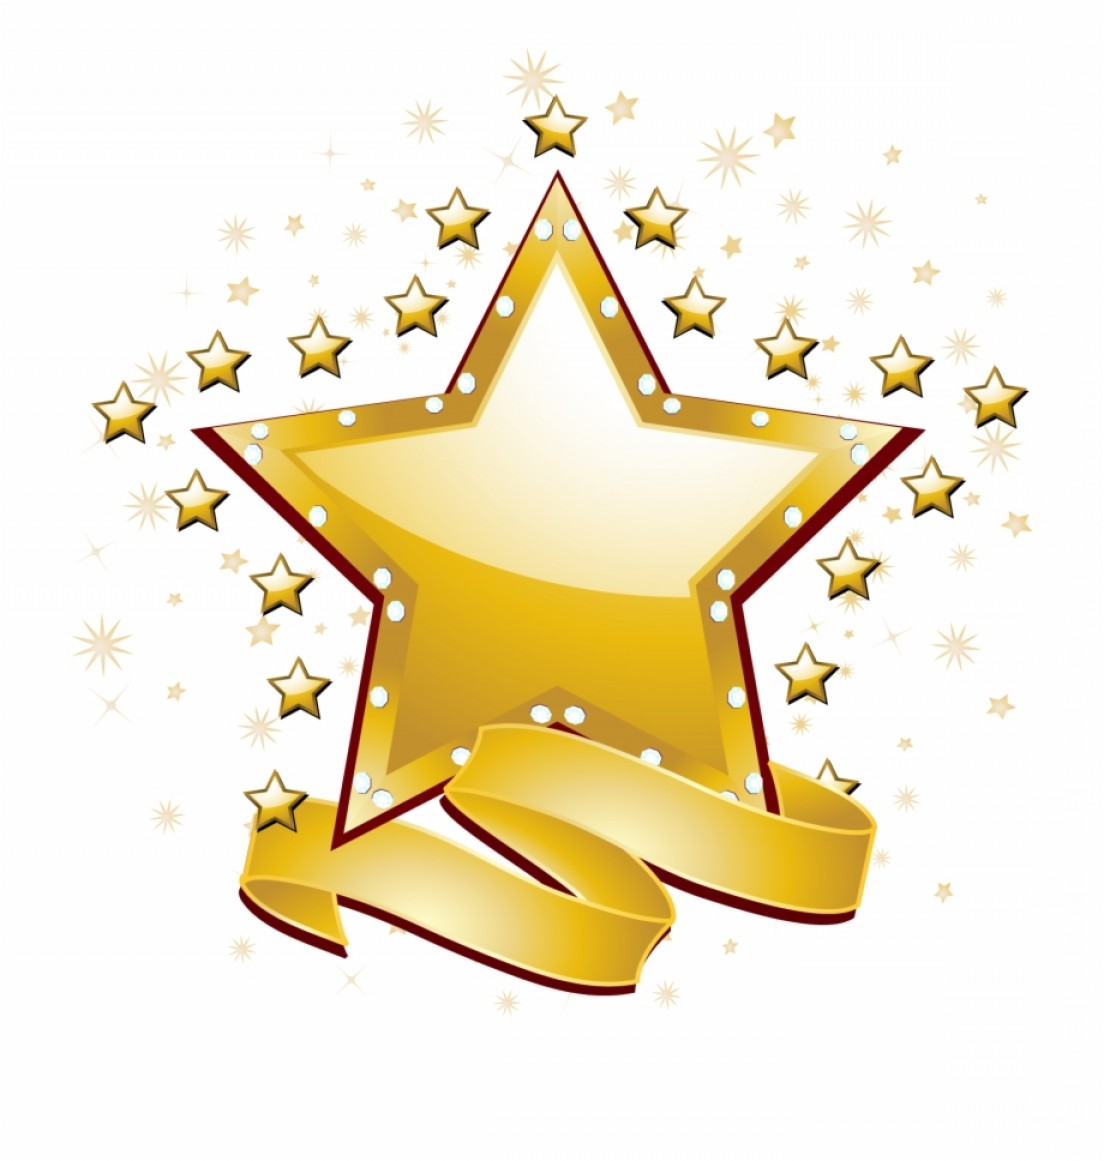 Free Vector Star: Oiriijfree Star Vector Jpg Library Library Gold Star